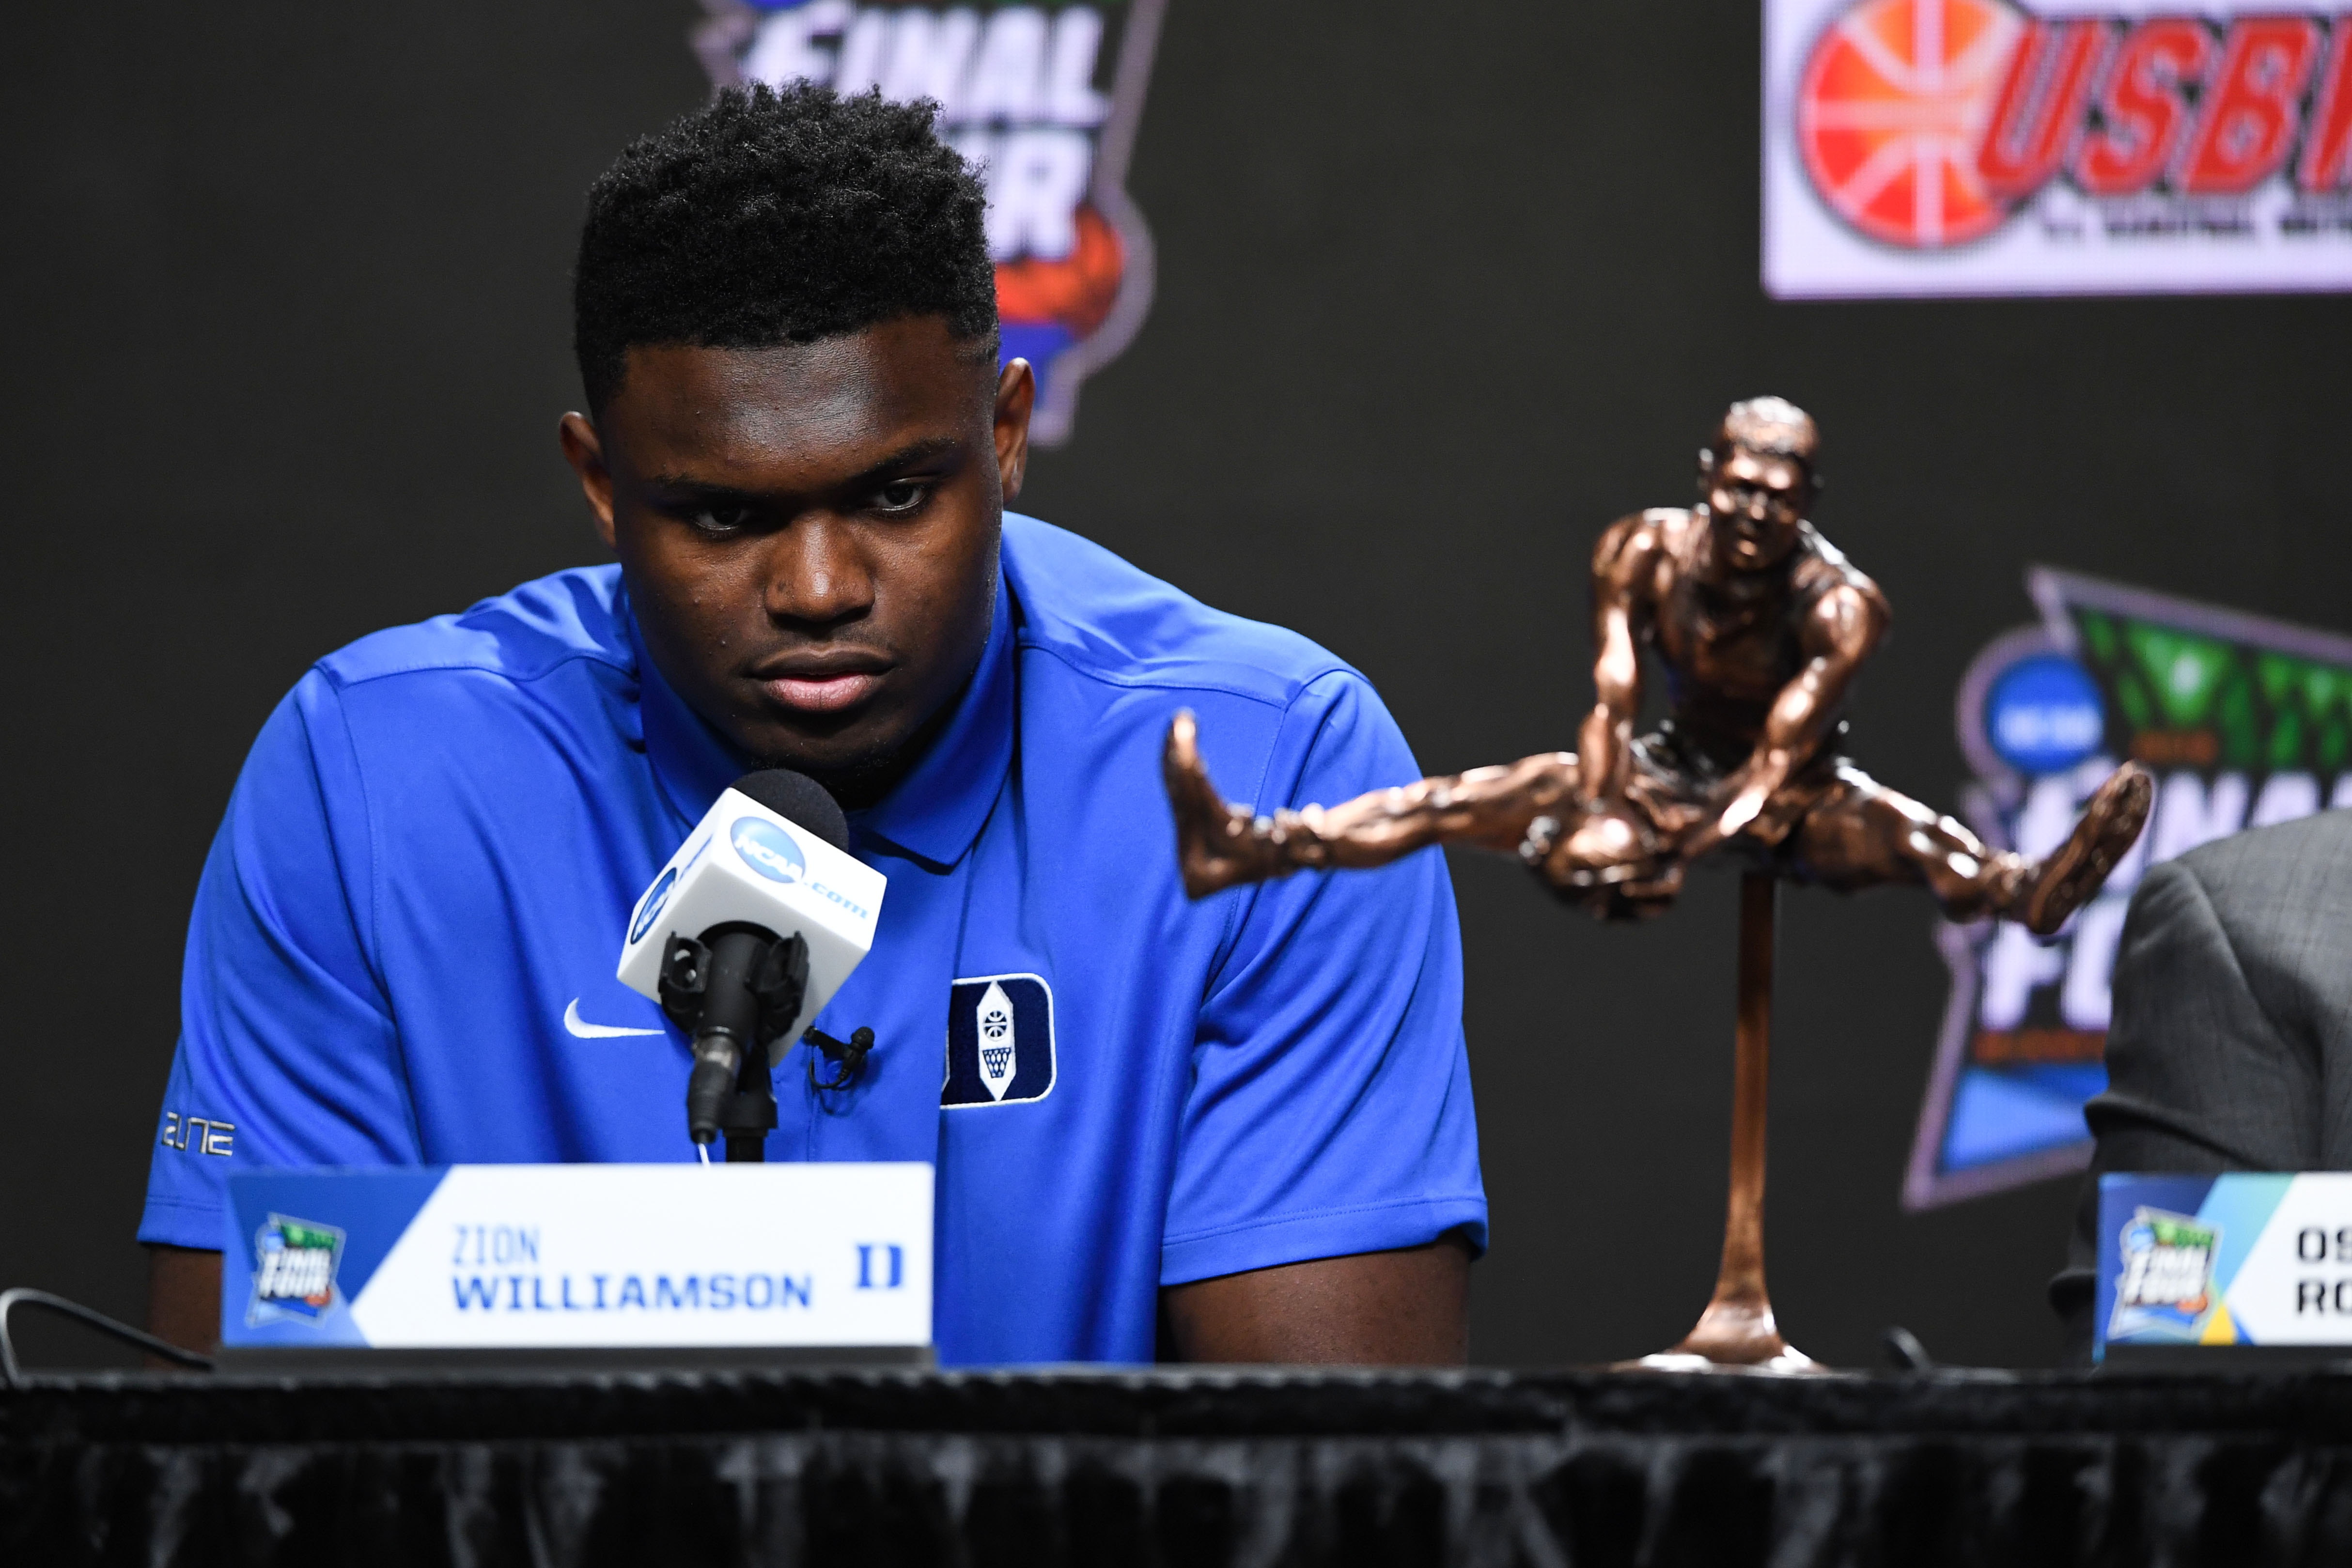 Zion Williamson would 'love' to play for Knicks if drafted by team